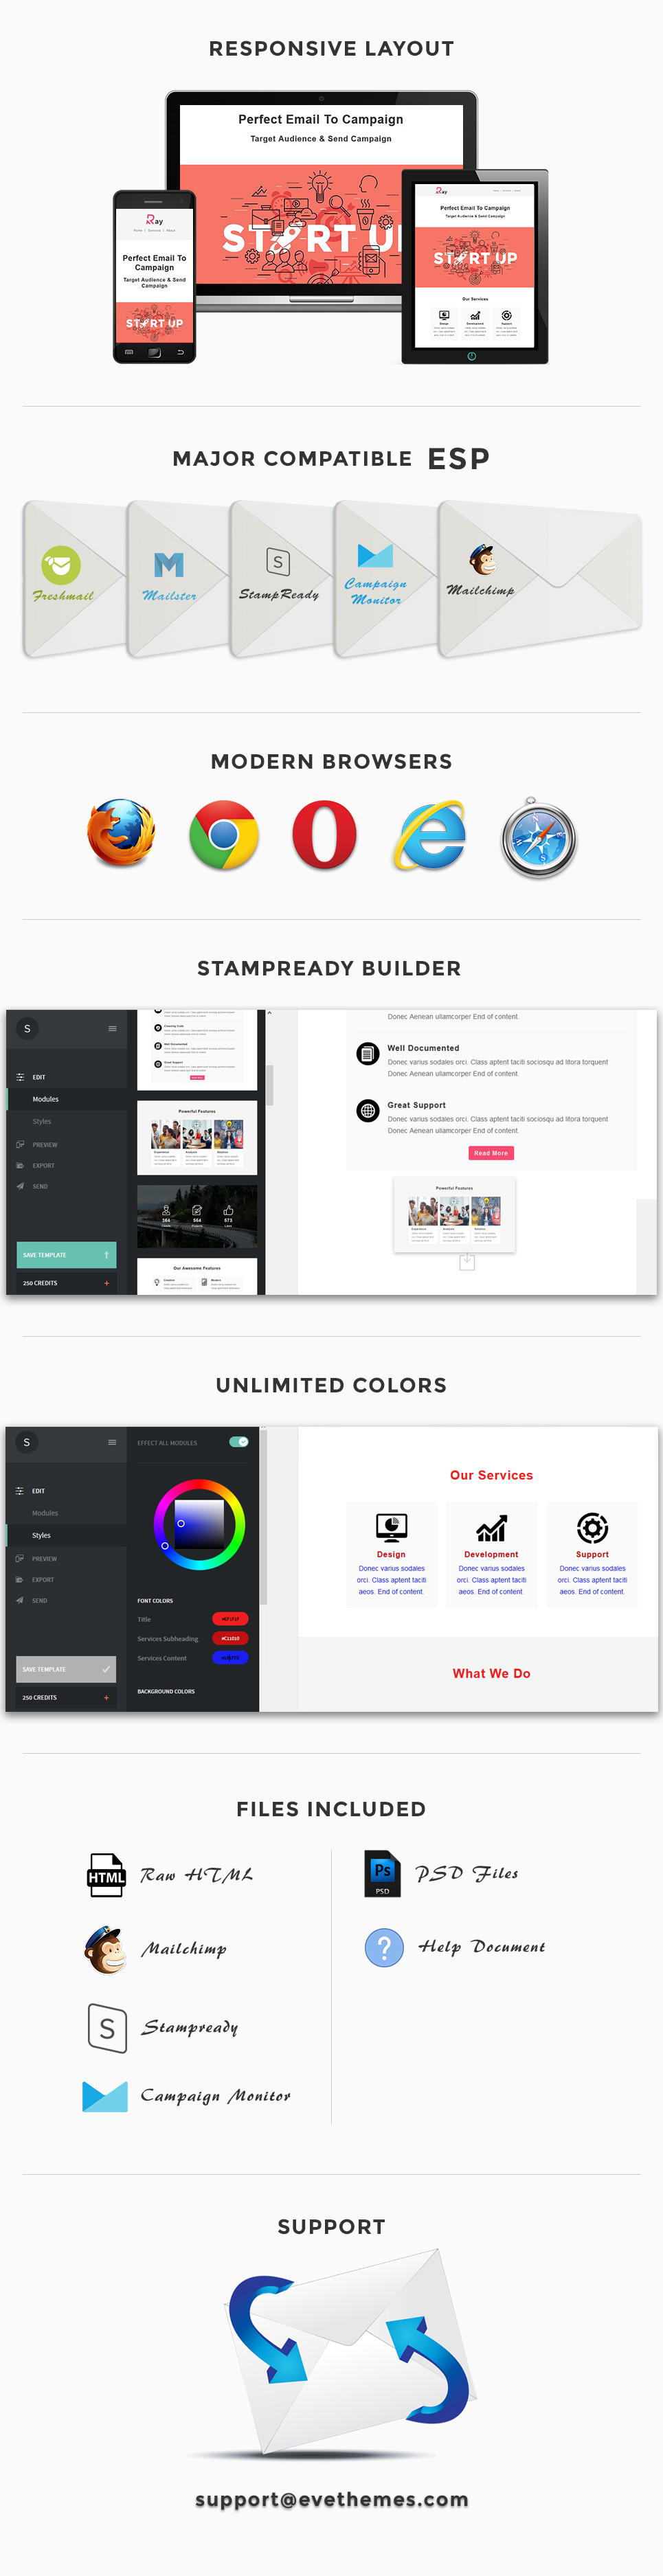 Ray - Responsive Email Template + Stampready Builder